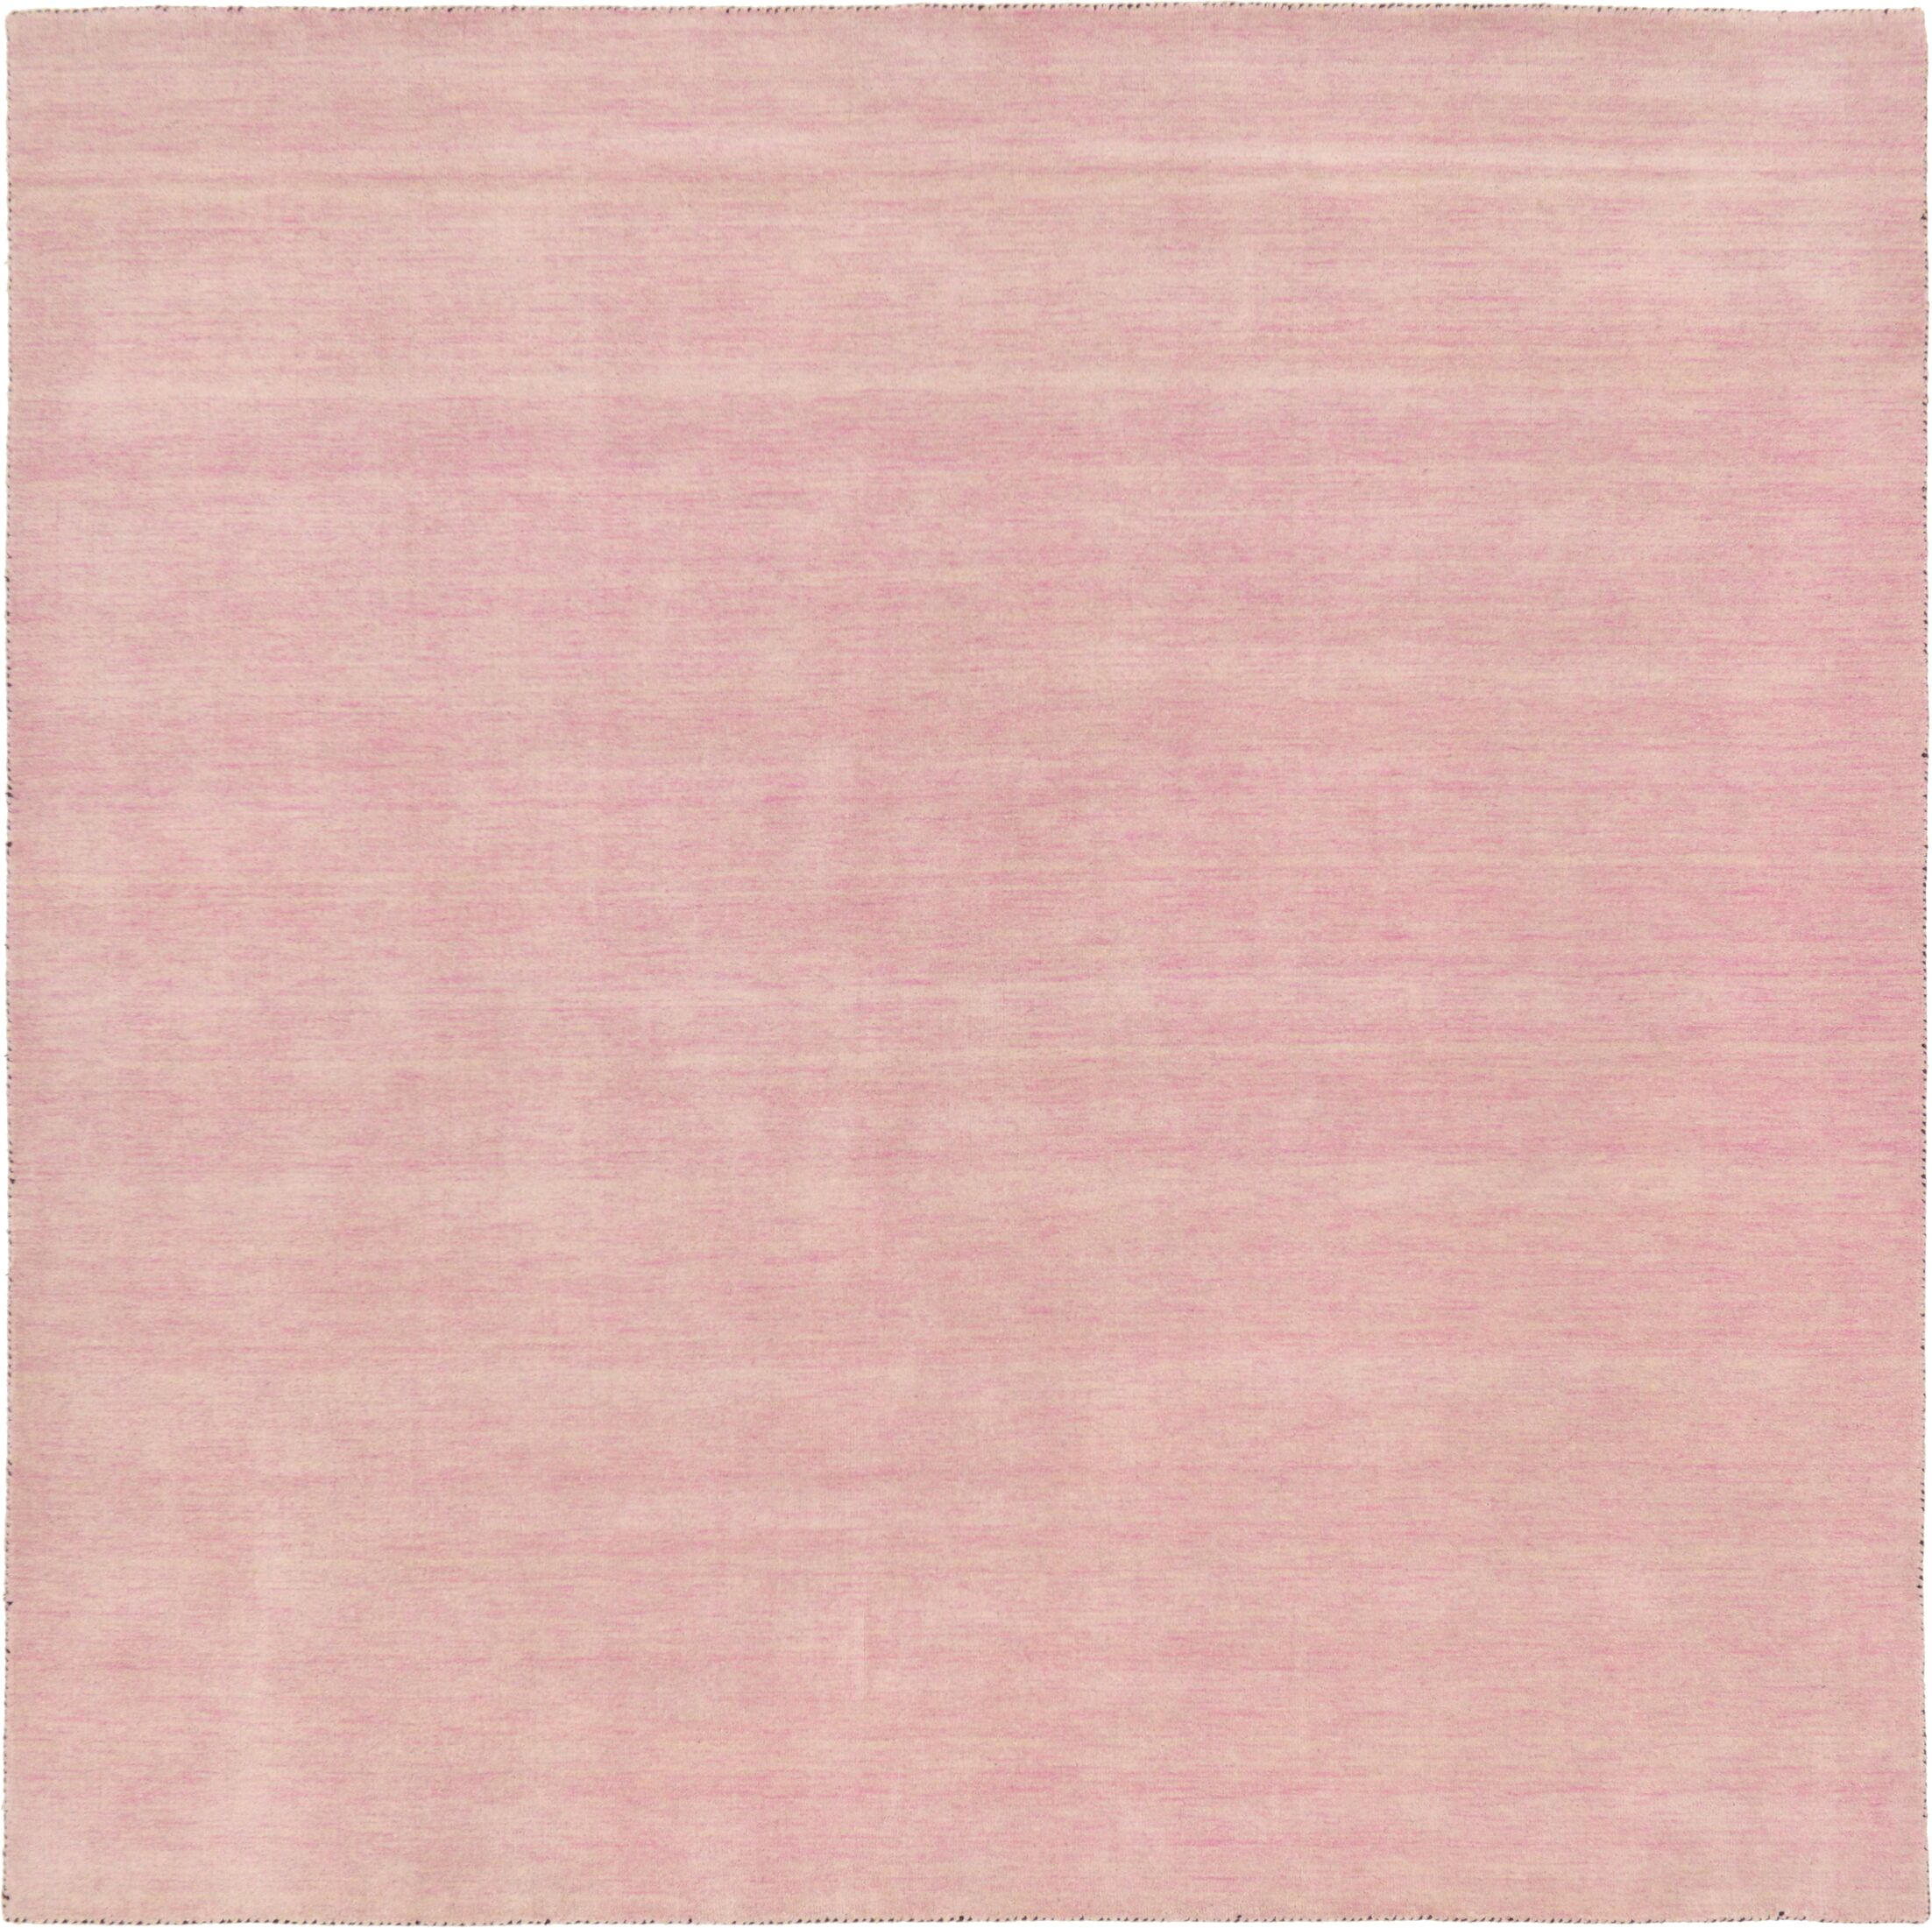 Taul Hand-Knotted Wool Pink Area Rug Rug Size: Square 9' 10